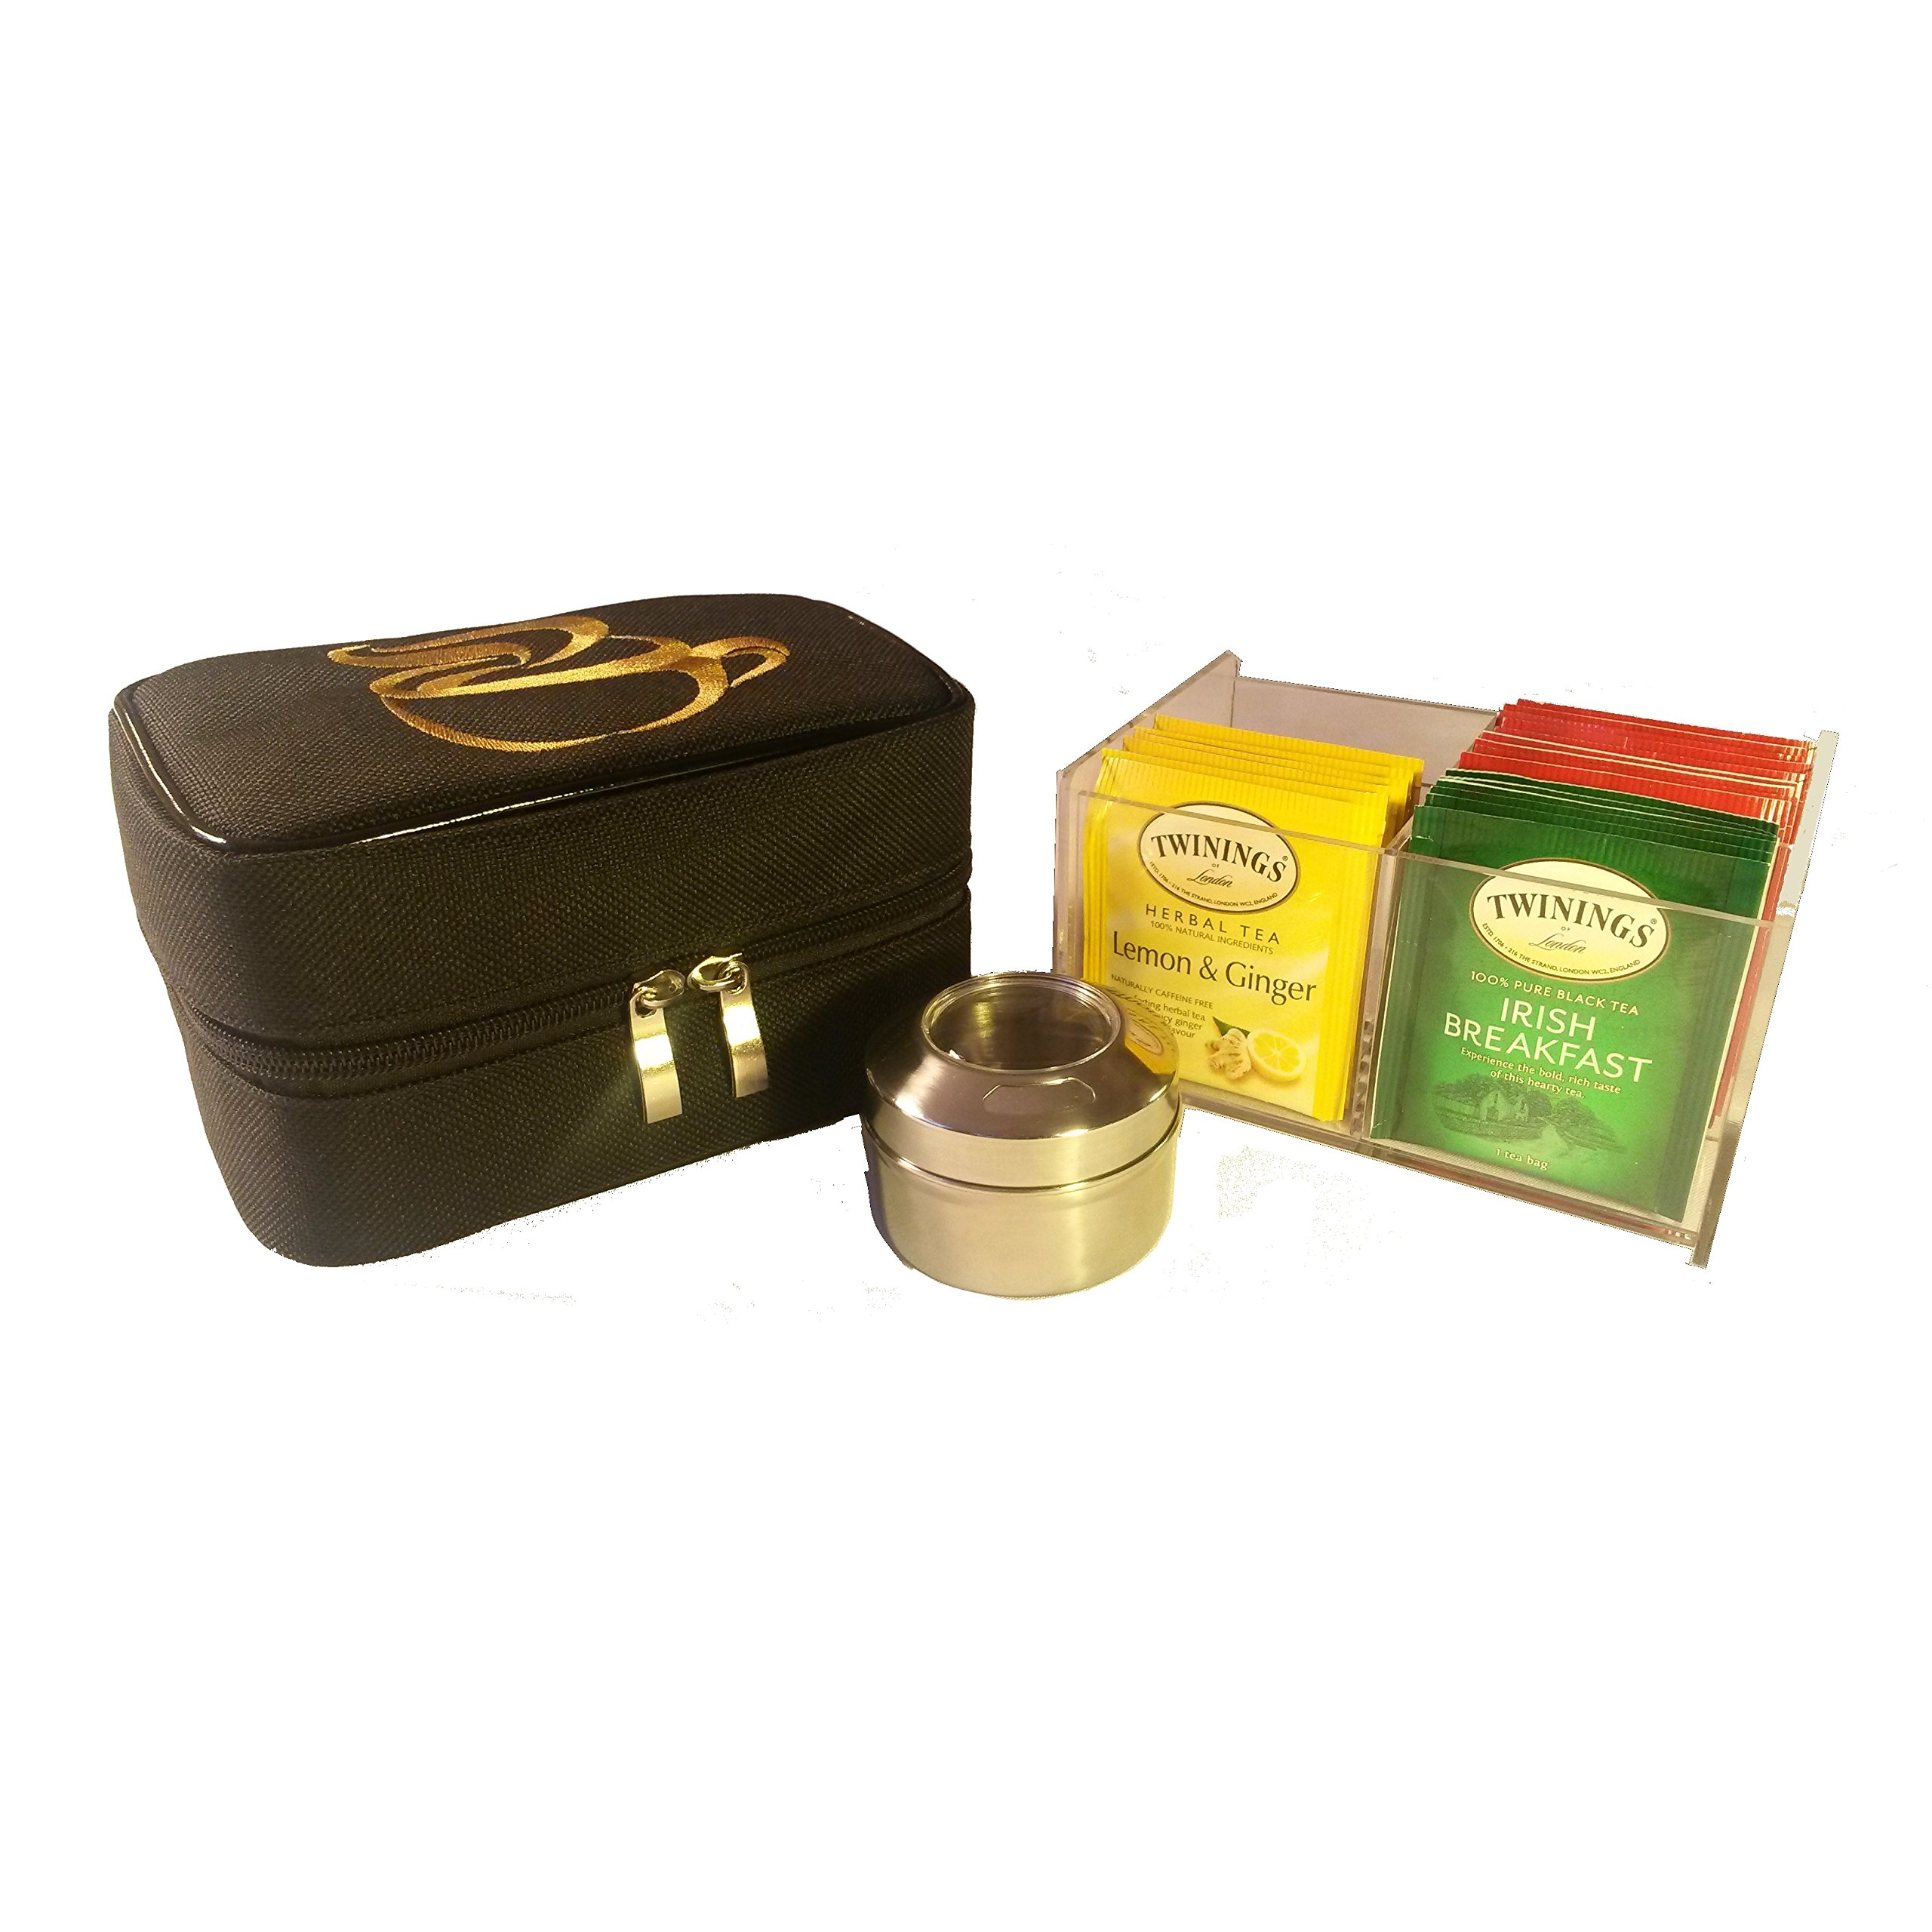 Teacaso Travel Tea Chest Organizer w/Tea Bags and Spice Jar - Great for Home, Office, Travel! by Teacaso